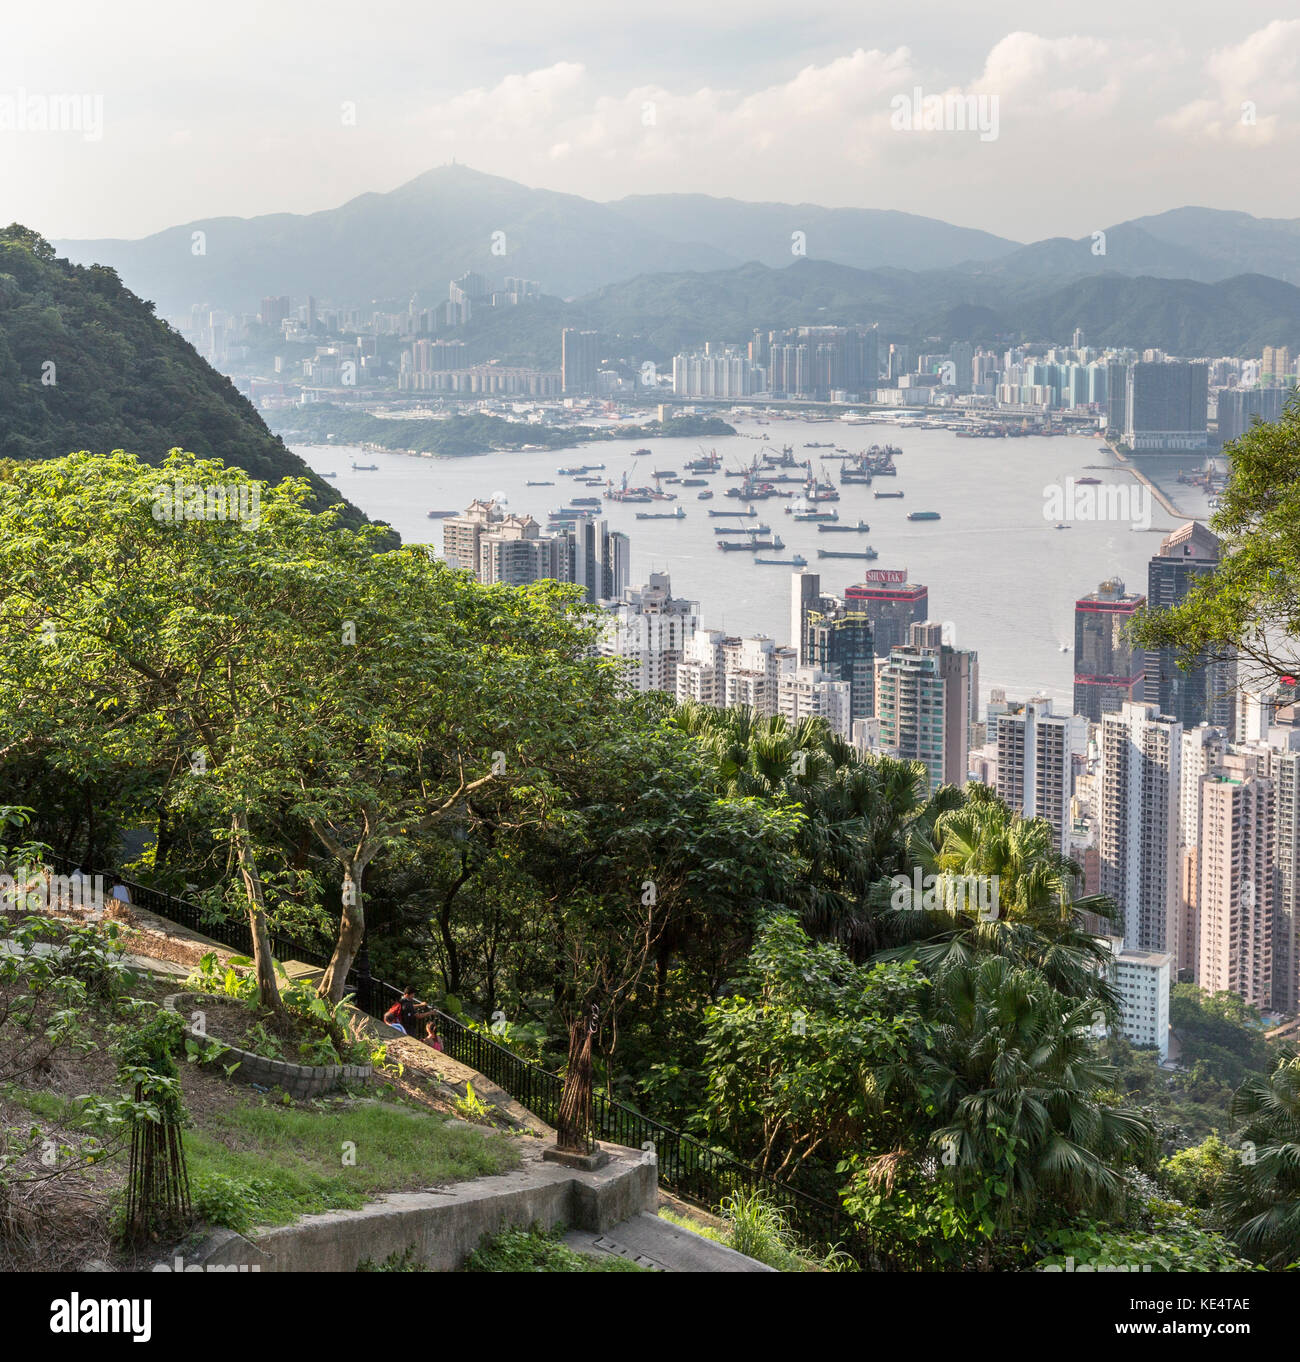 Hong Kong, SAR, China - 2 June 2013: Tourists on pathway at Victoria Peak with Victoria Harbour beyond - Stock Image